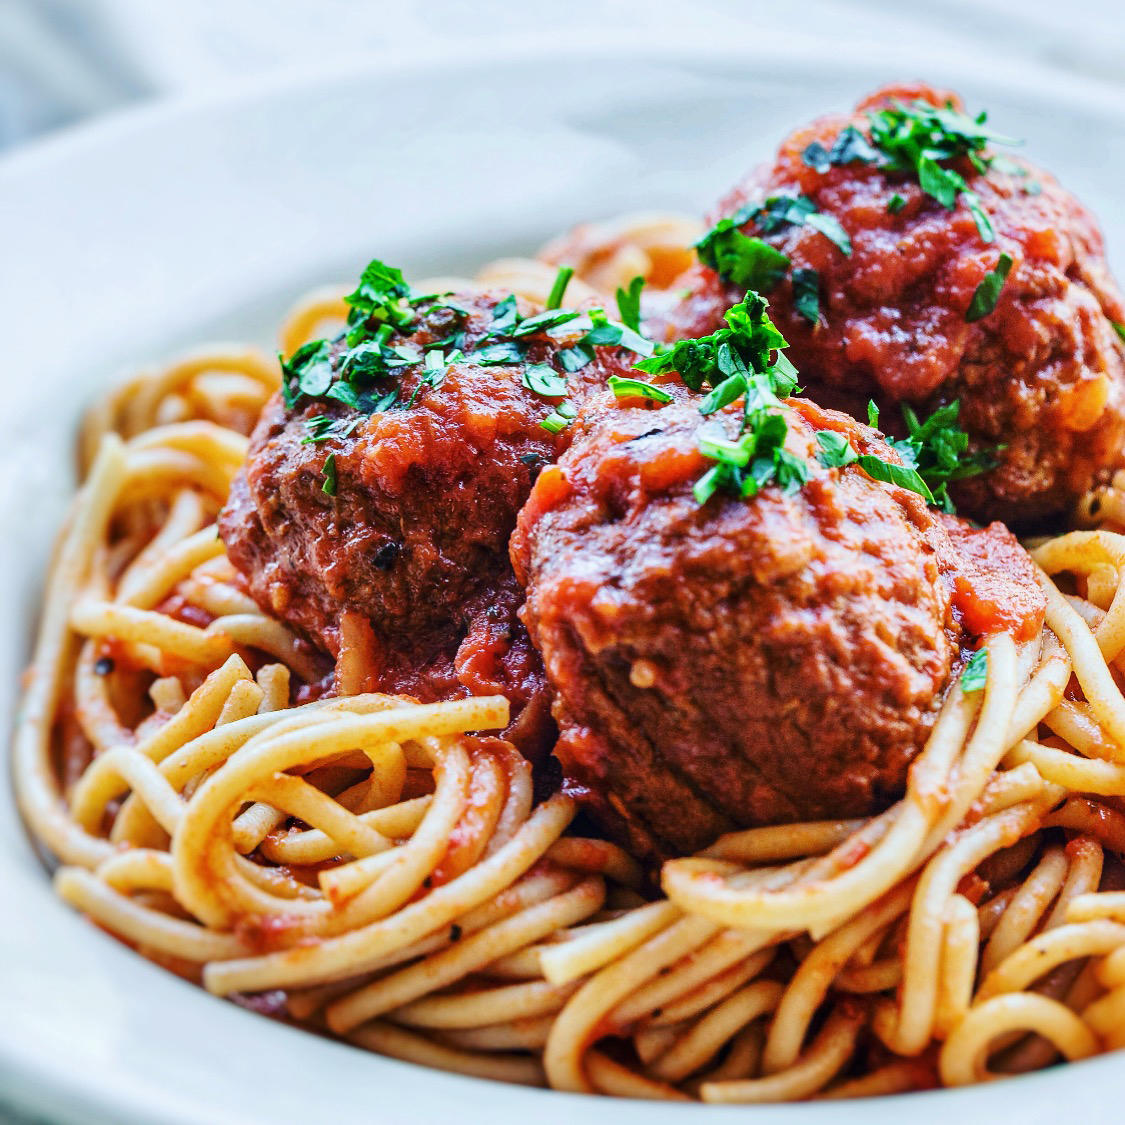 Whole Wheat Spaghetti with Meatballs